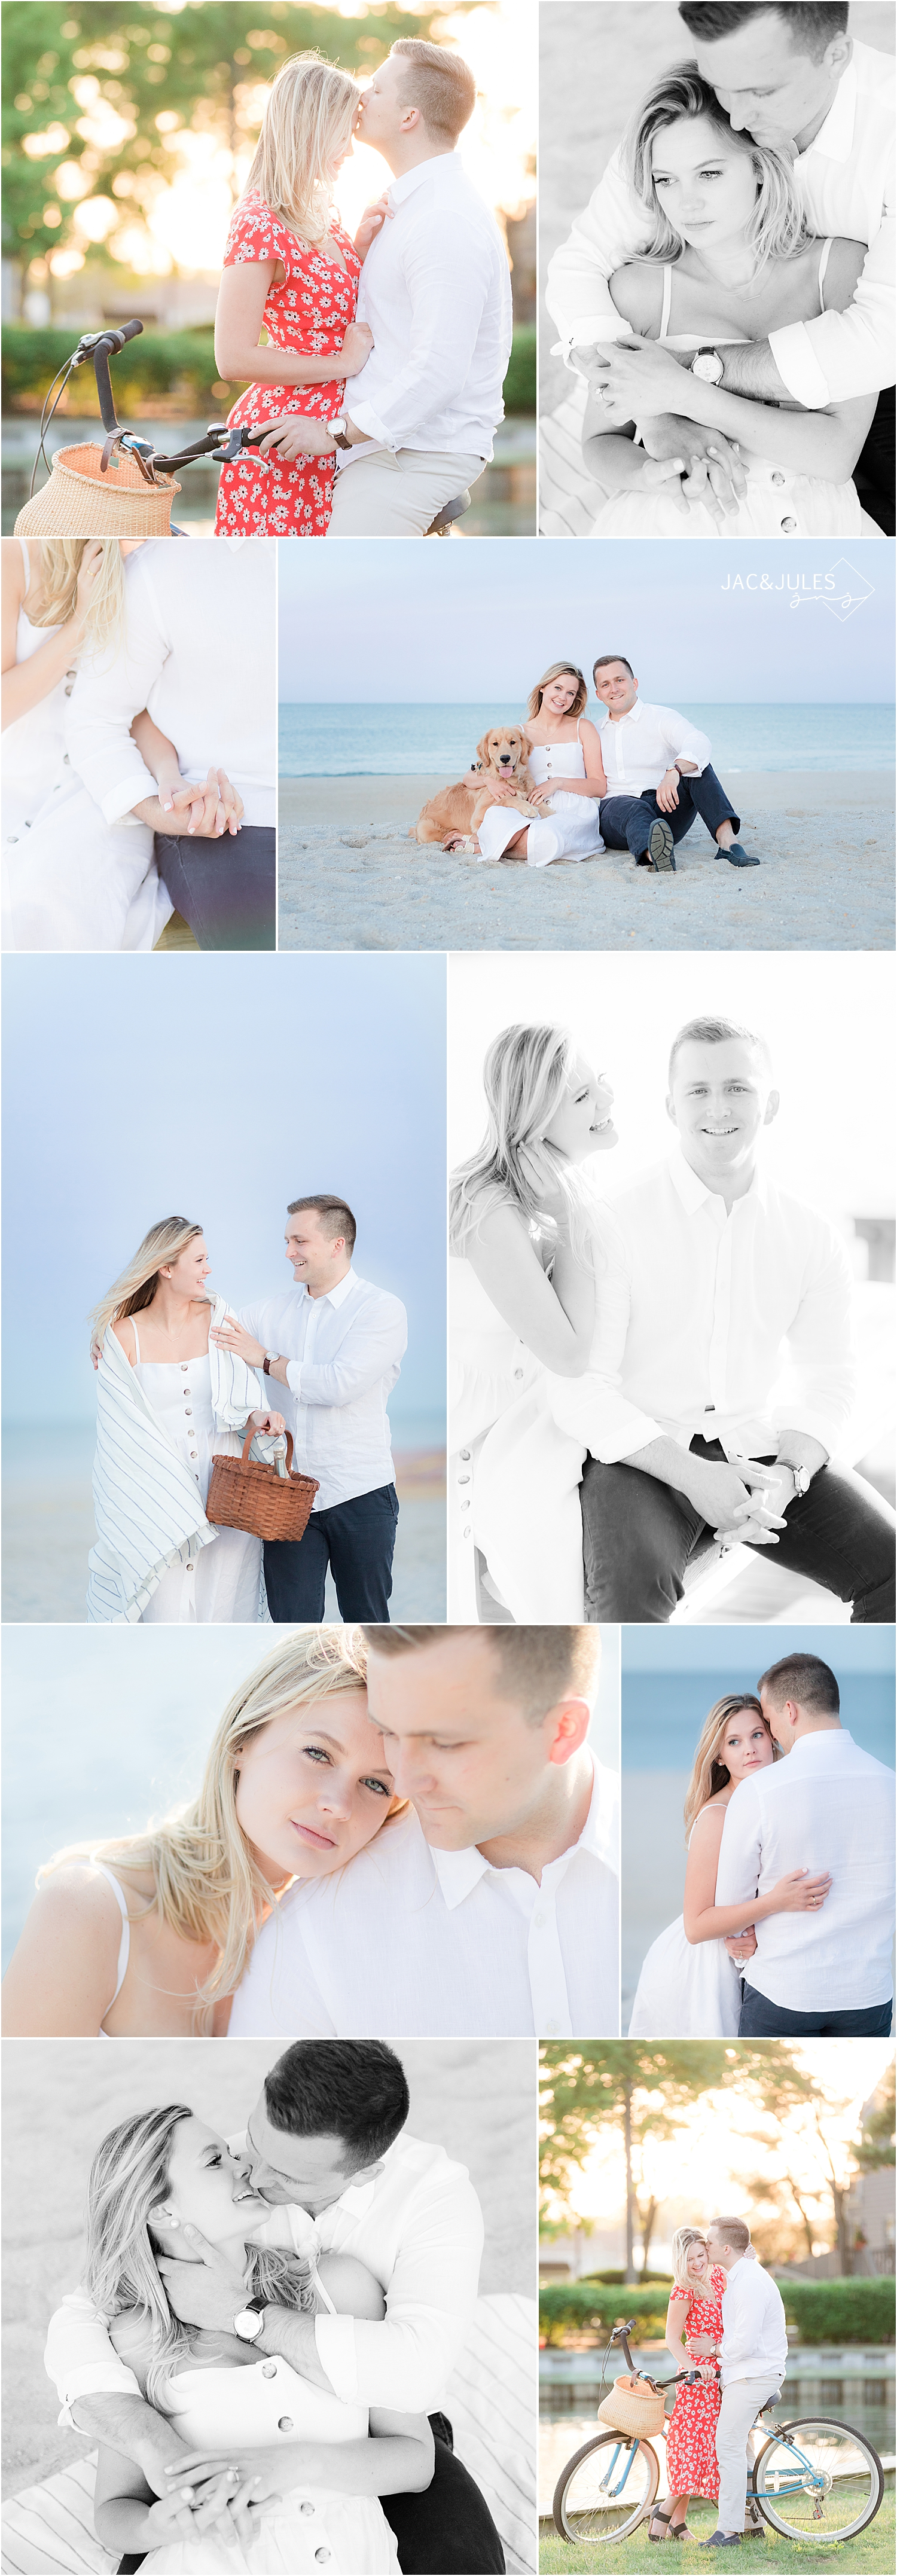 romantic engagement photos in bay head new jersey with a dog and bike on the beach